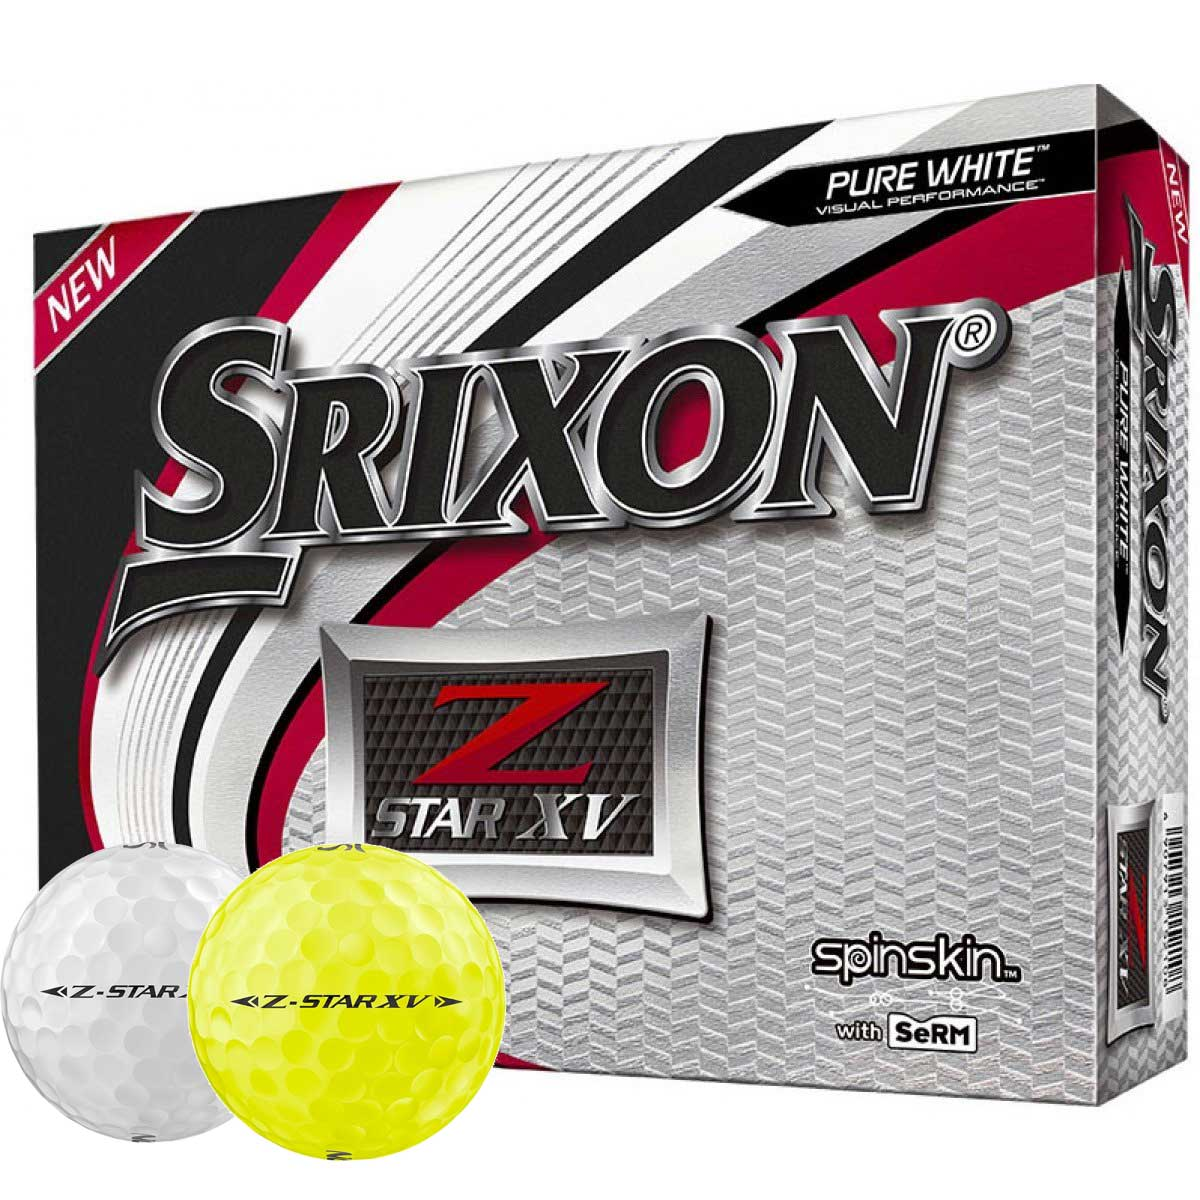 Srixon Z Star 6 XV Golf Balls